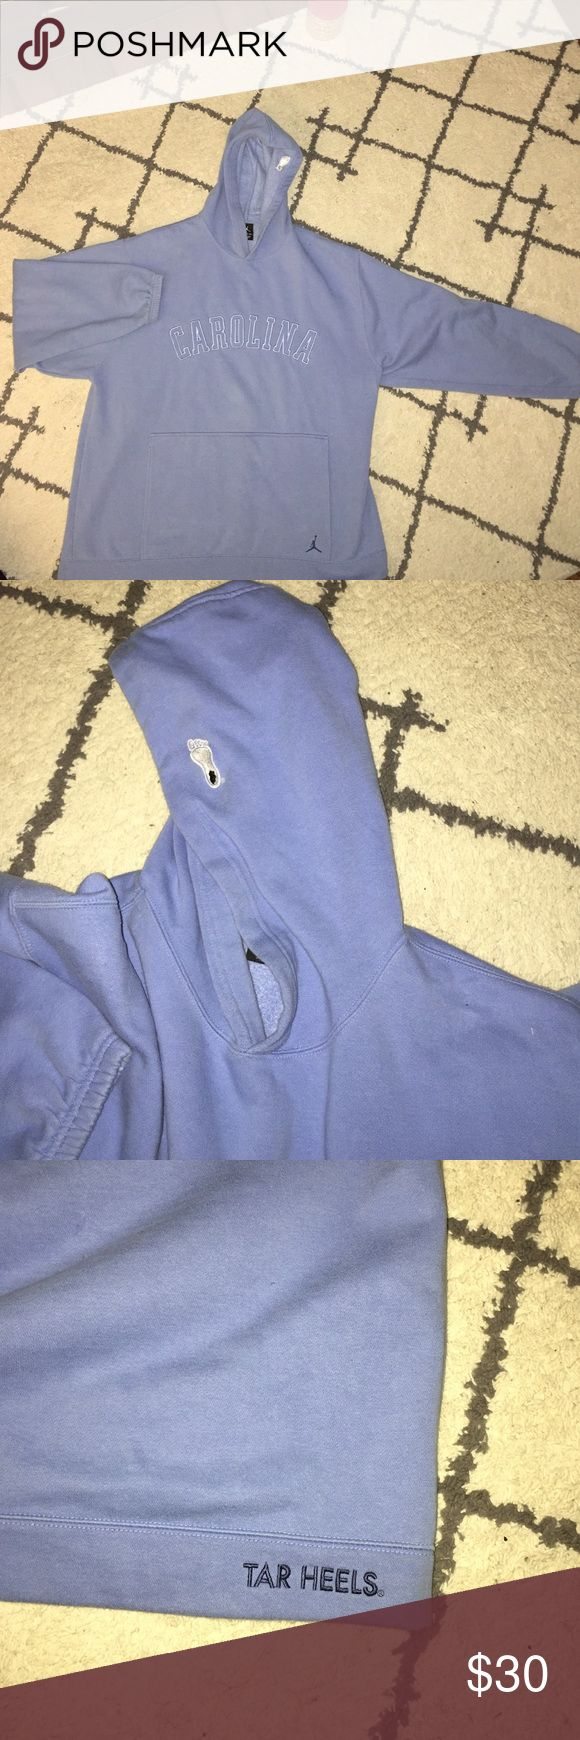 Rare Retro Jordan UNC Hoodie Super rare Jordan fleece Hoodie from 2001.  Great condition especially considering its age. Embroidered Carolina on front with Tarheel on the hood. Elastic in sleeves!!! A must for the UNC or Jordan fan! Make an offer!!! Jordan Shirts Sweatshirts & Hoodies